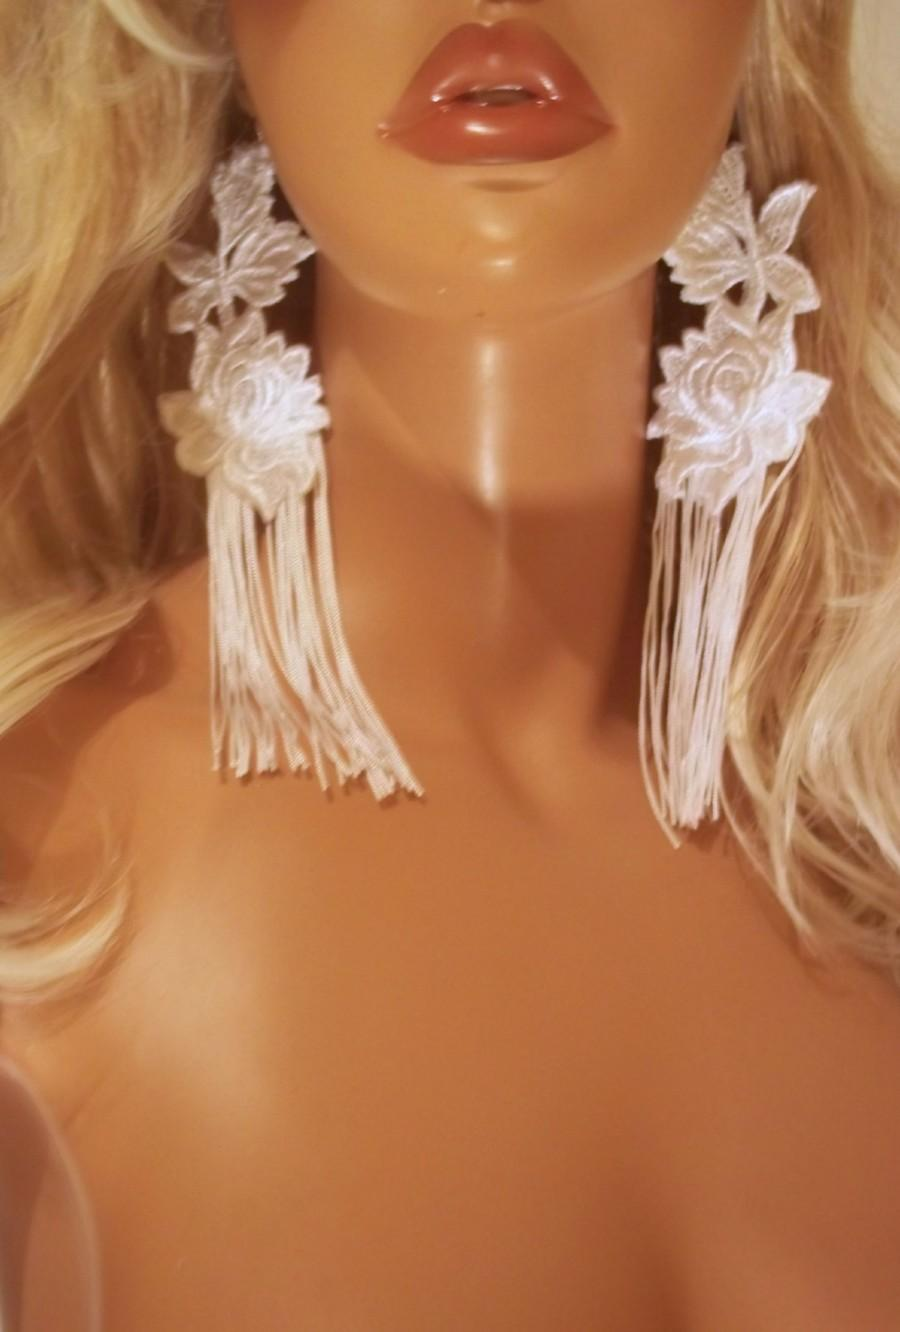 Wedding - Beautiful Sexy White Lace Fringe Earrings, Long Fringe Earrings, Bridal Earrings, Wedding Earrings, Party Earrings, Bride Accessories - $20.00 USD